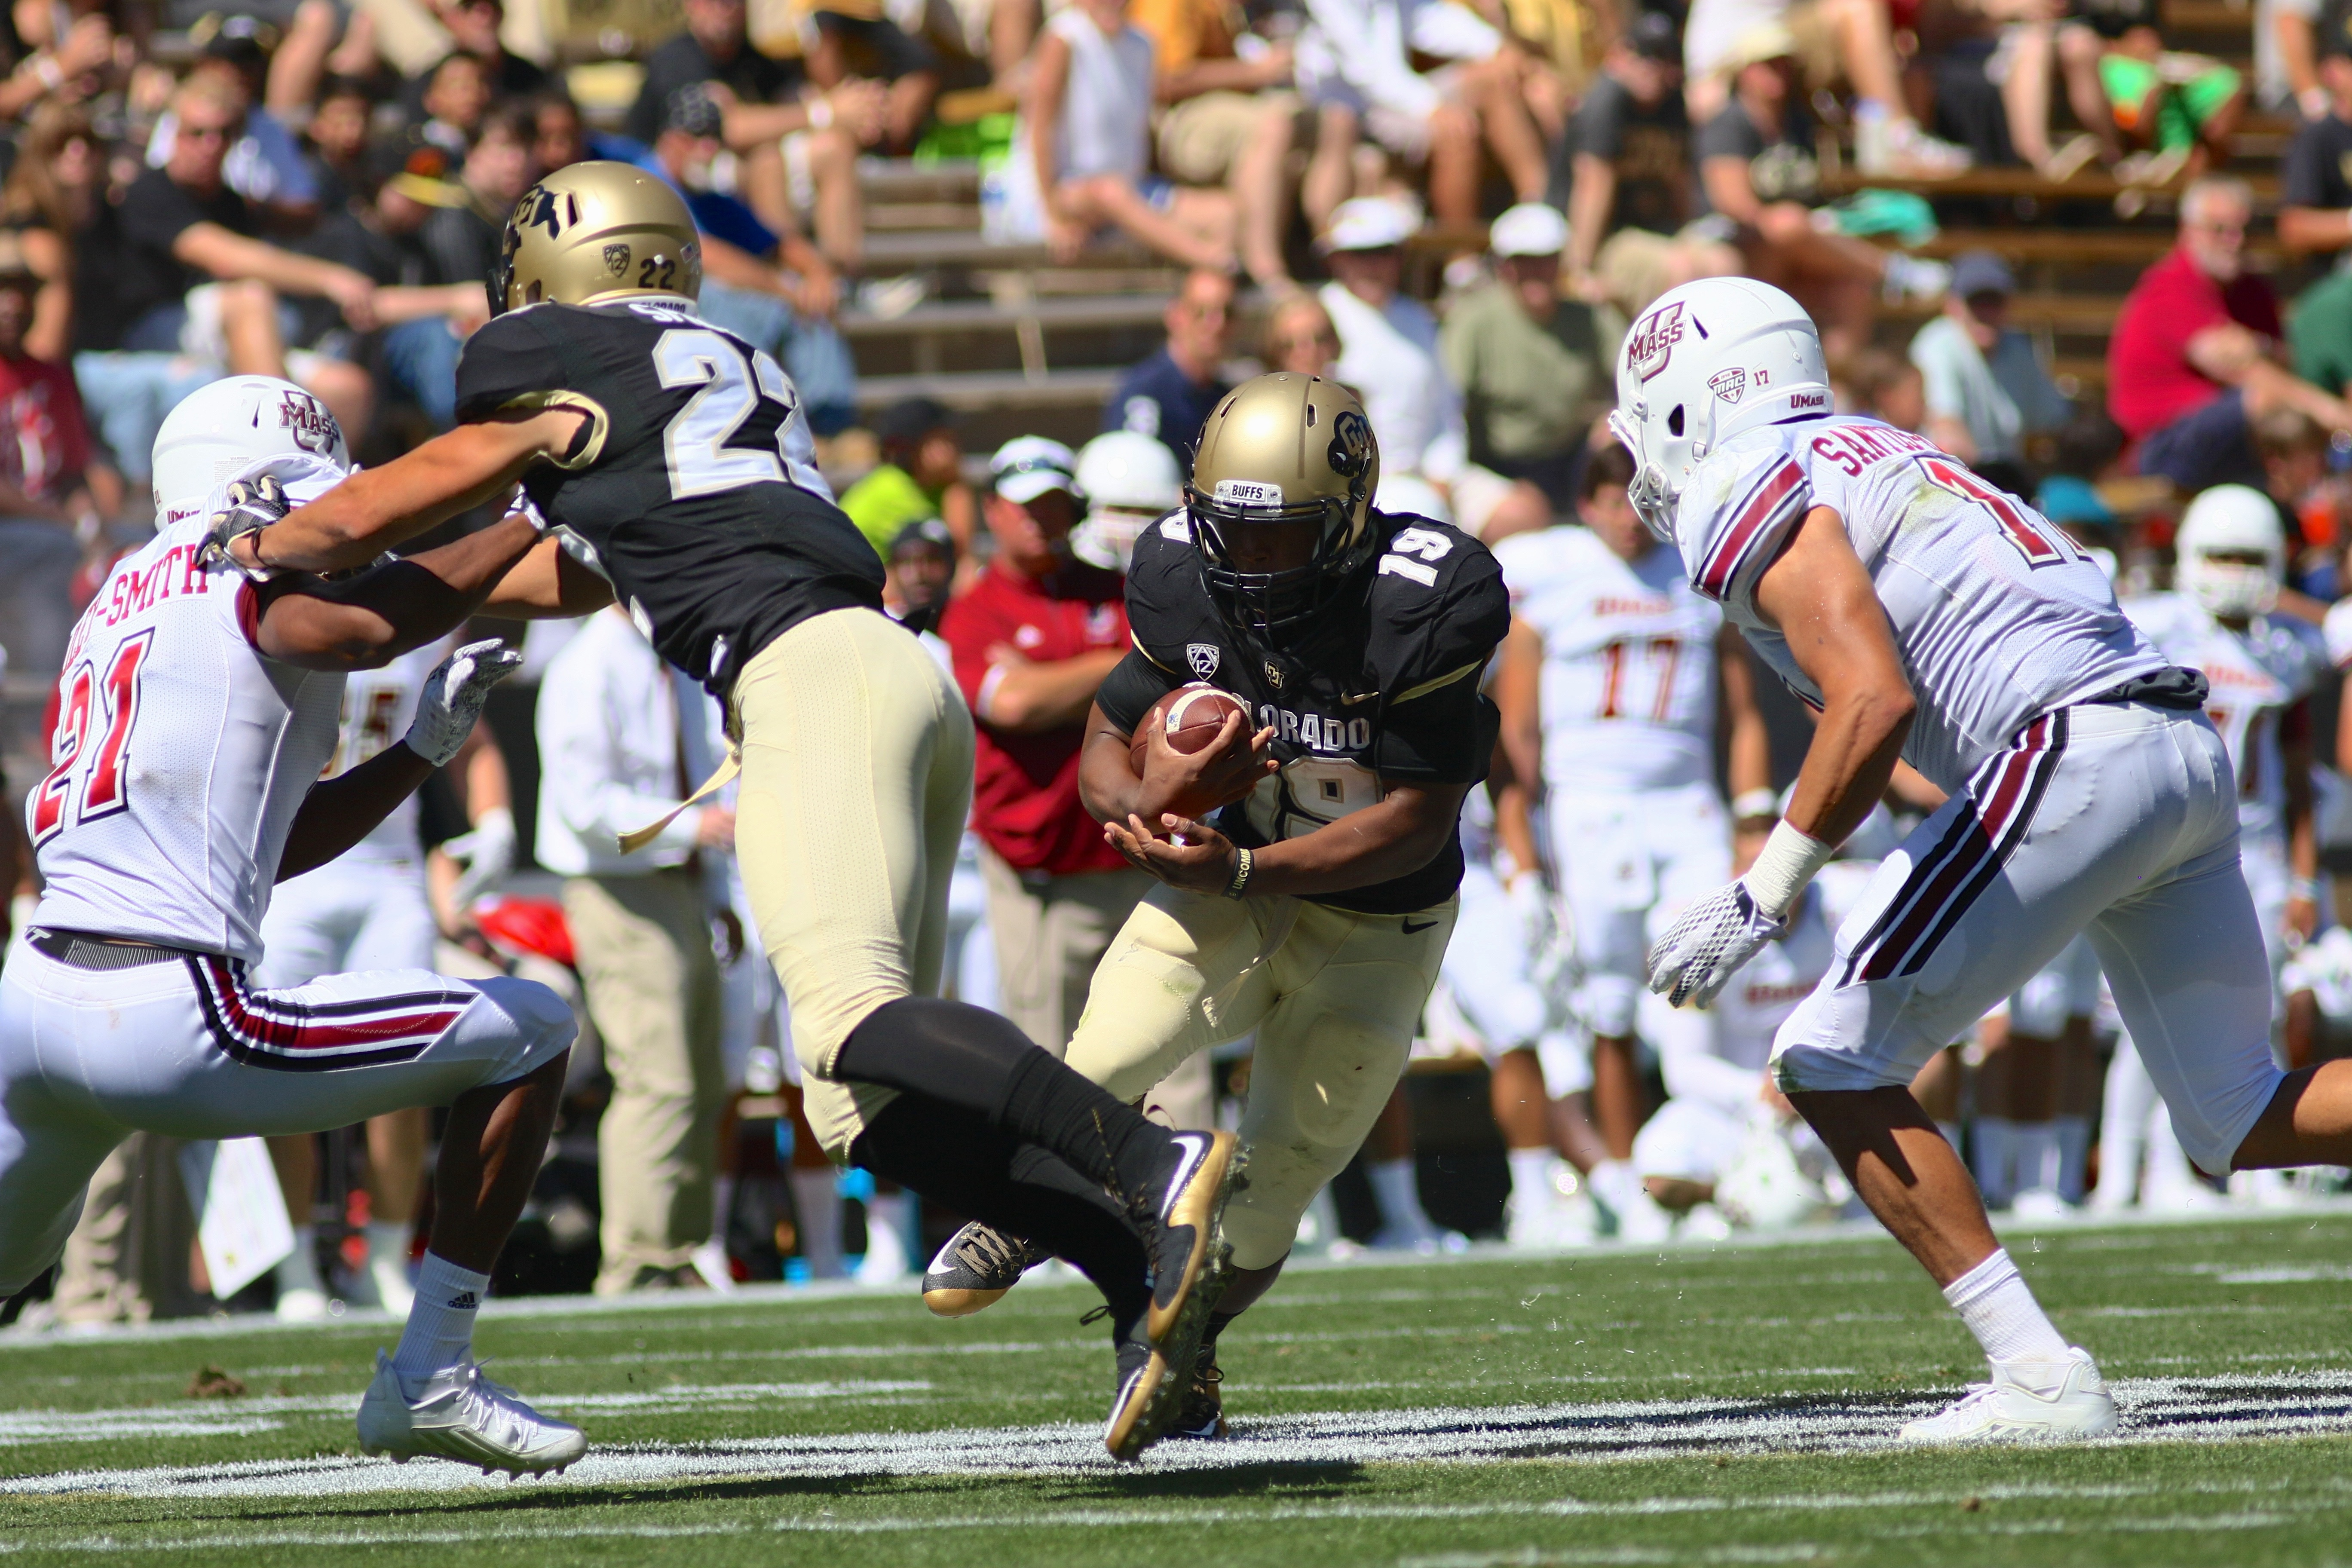 Junior RB Michael Adkins II looks to exploit a gap in the UMass defence during the second quarter of play at Folsom Field. (Nigel Amstock/CU Independent)